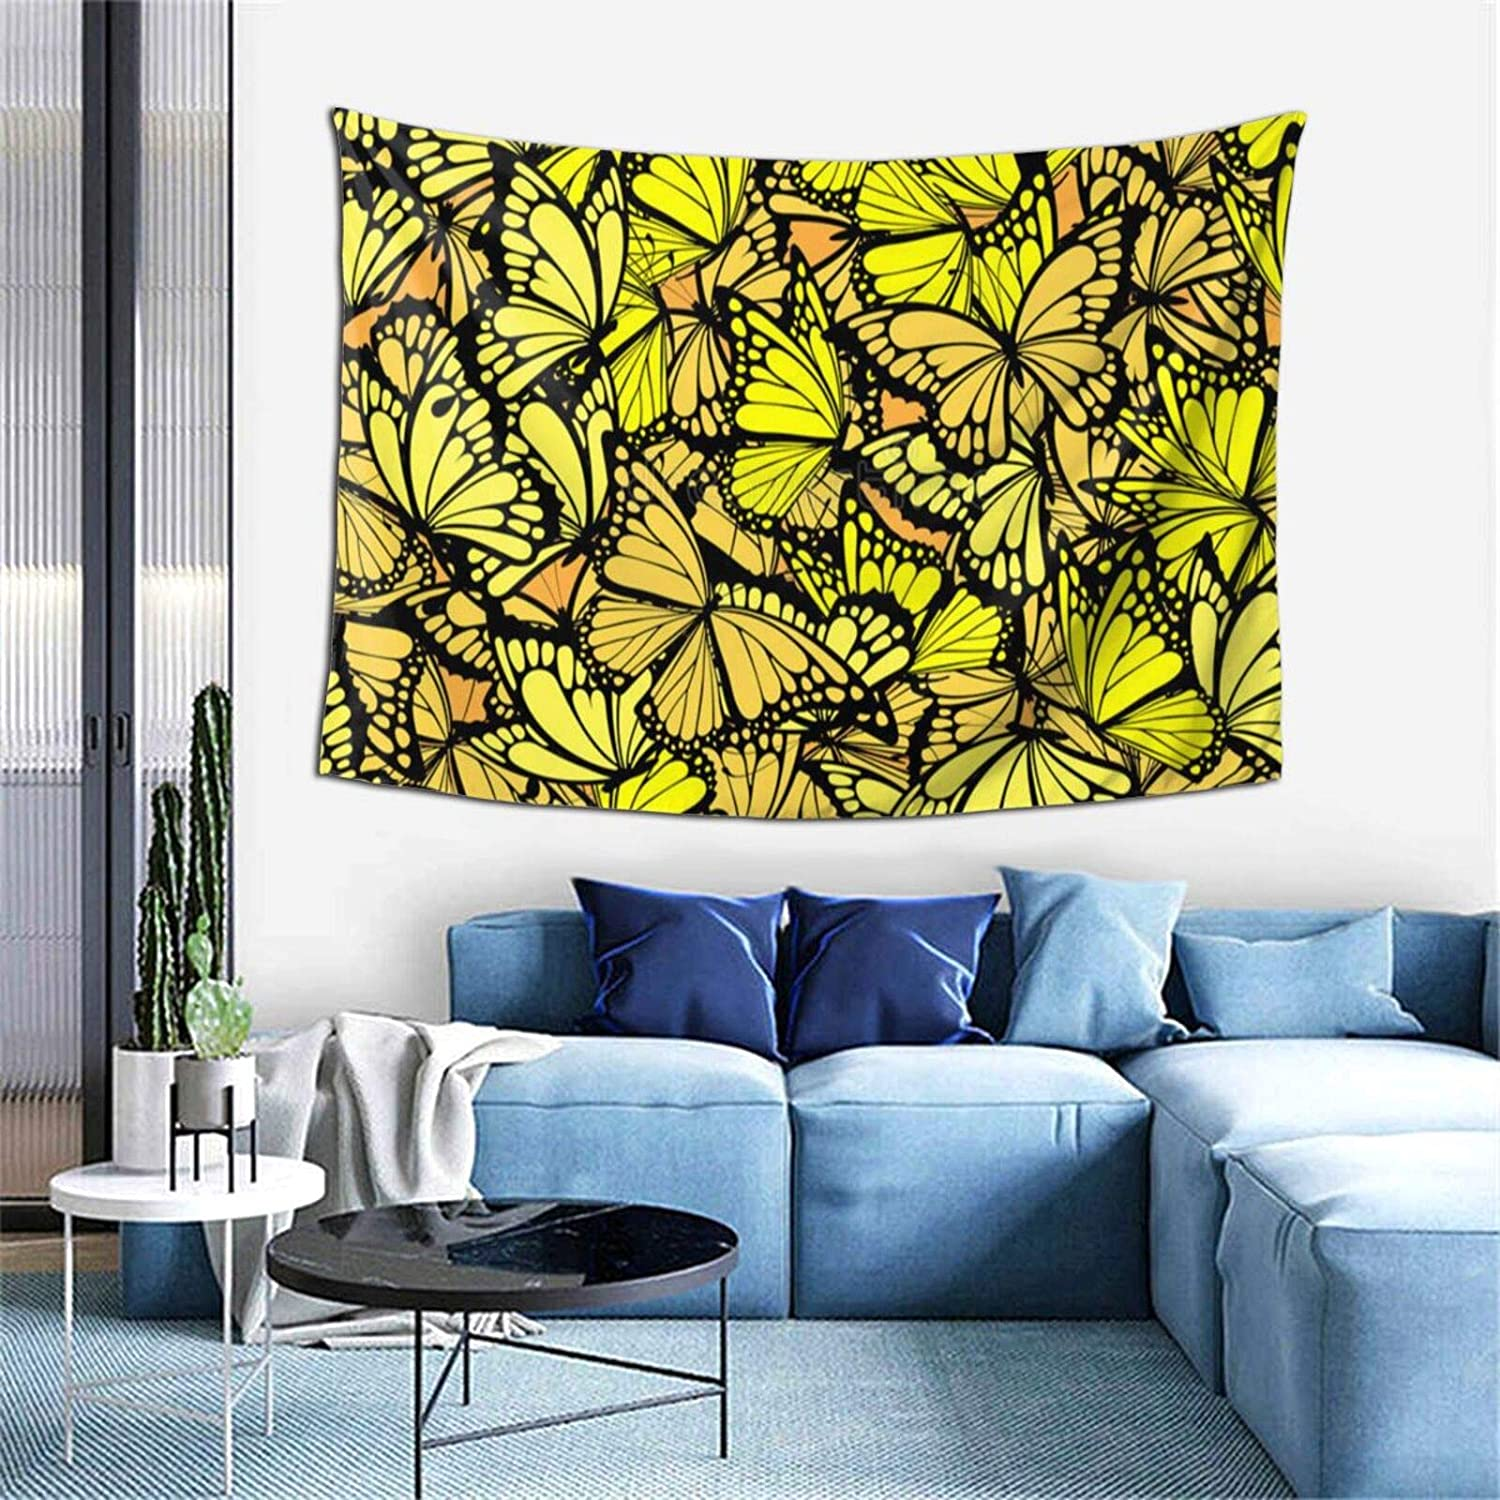 Butterfly Polyester Soft Tapestry Wall Hanging Art Decor Bedroom Living Room Door Balcony Bathroom Kitchen Dorm